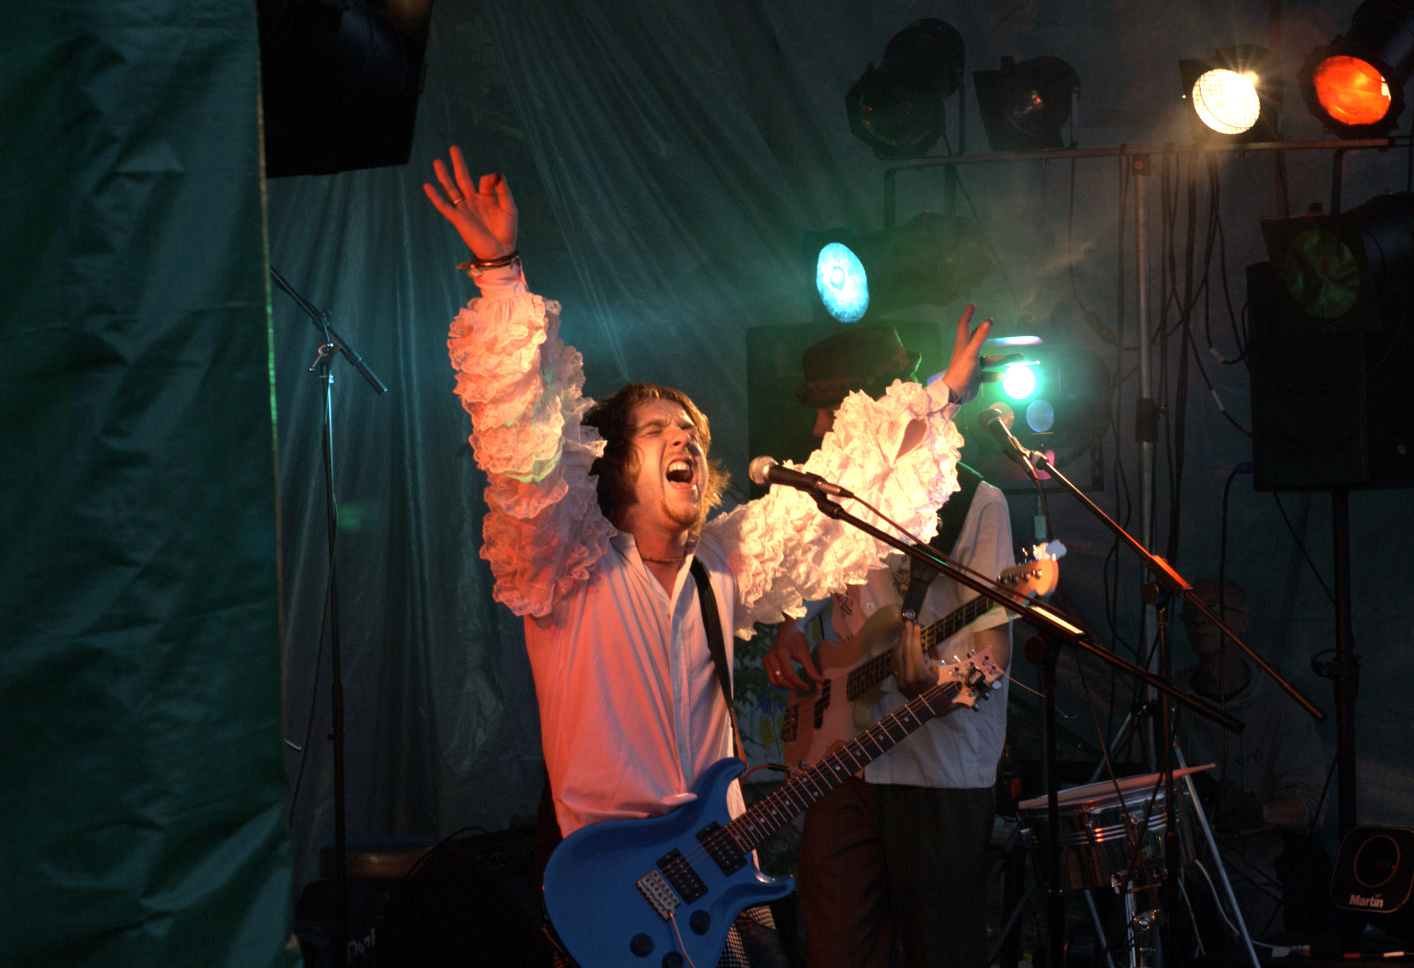 Man singing on stage with his arms raised, he has a guitar strapped to him